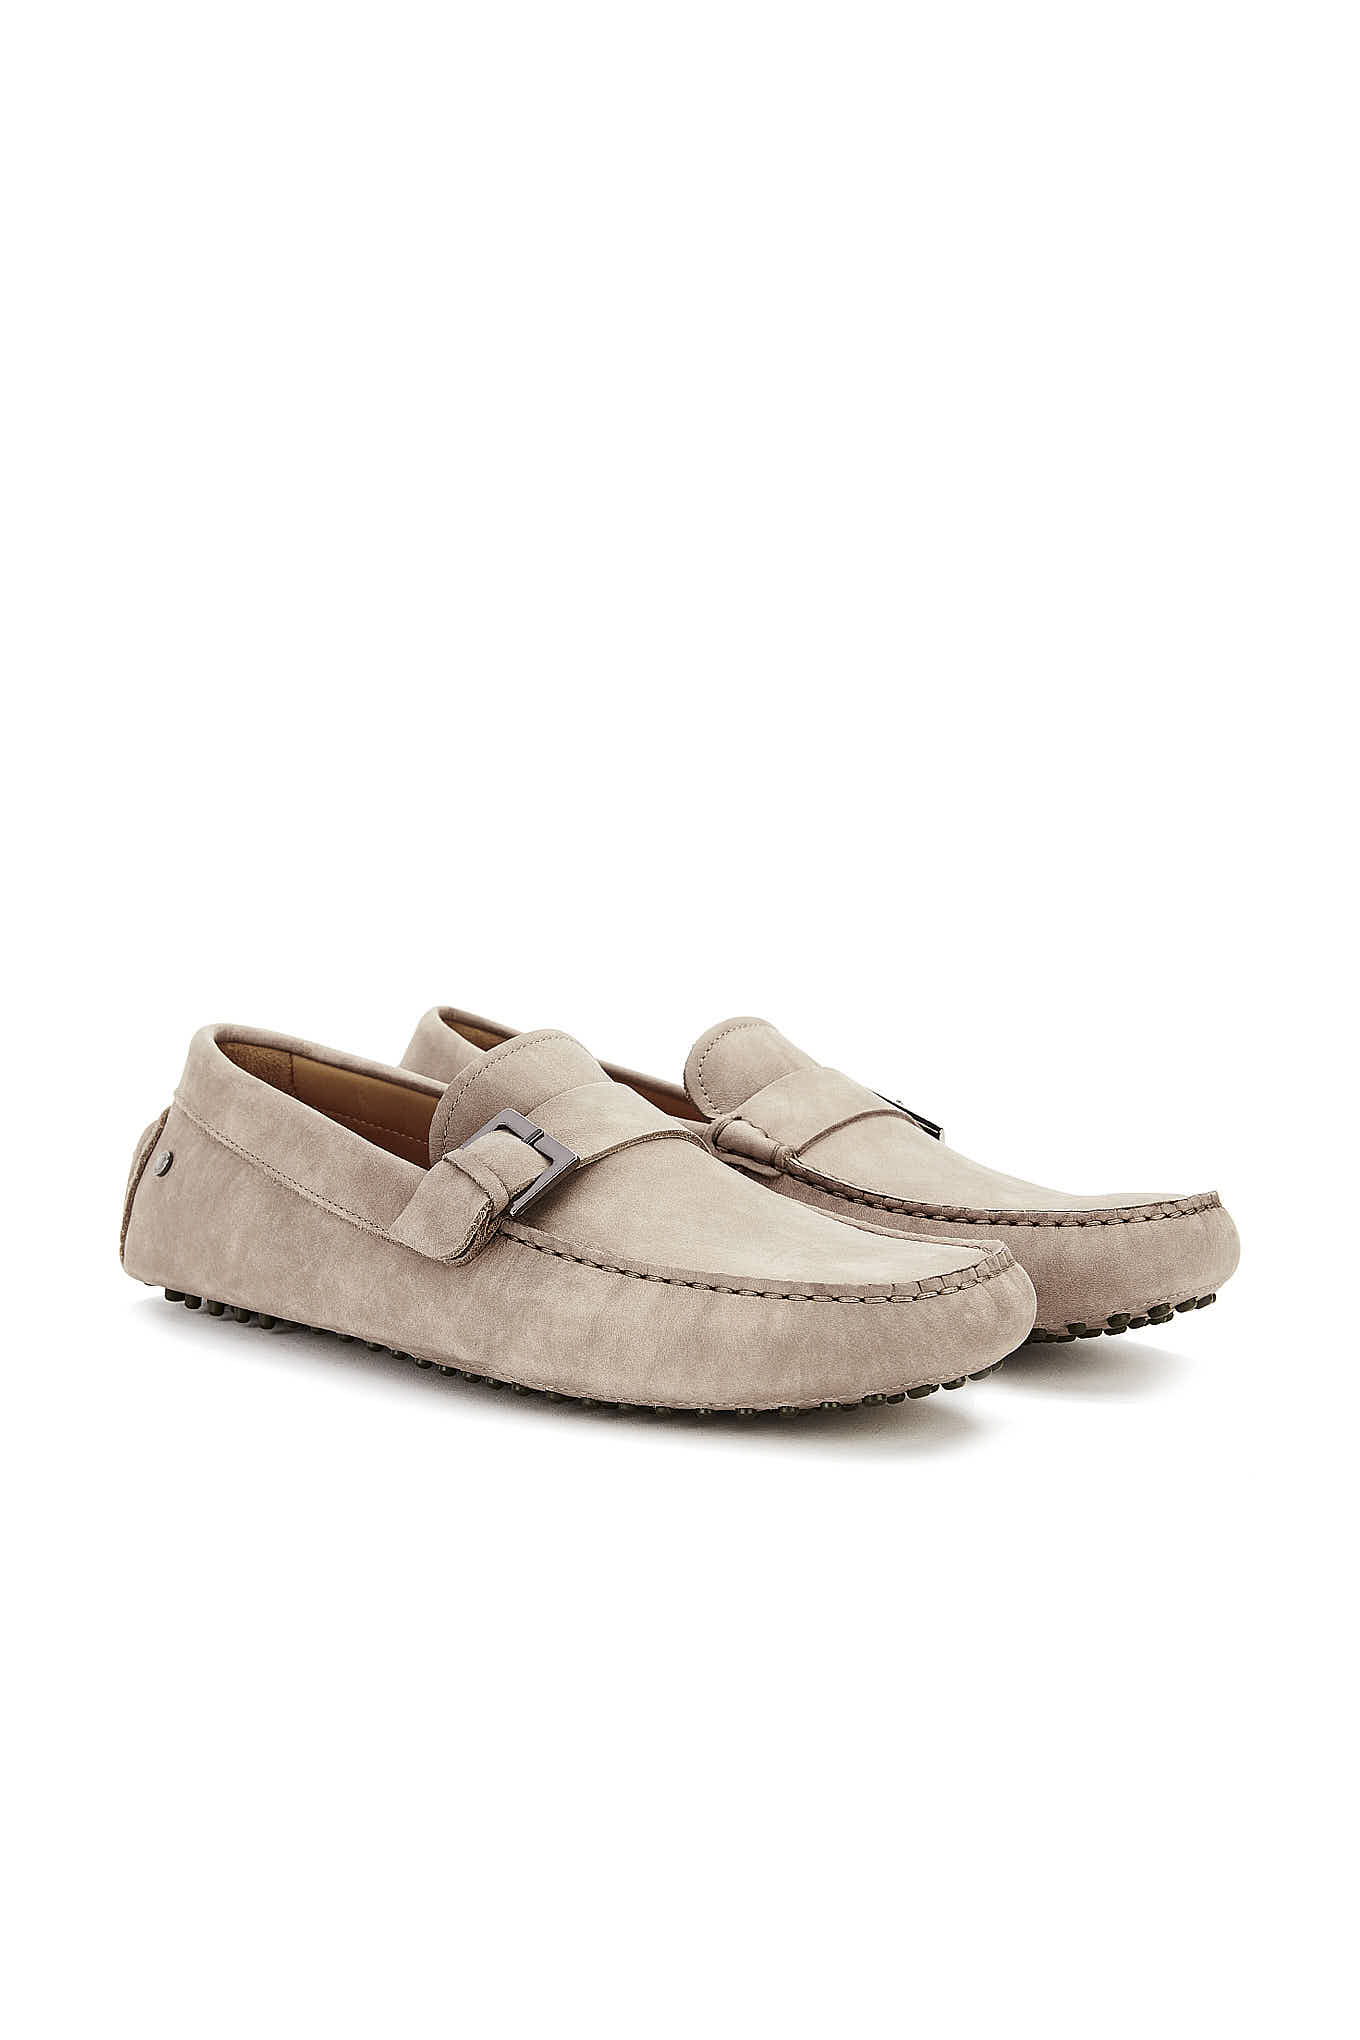 Drivers Beige Casual Man